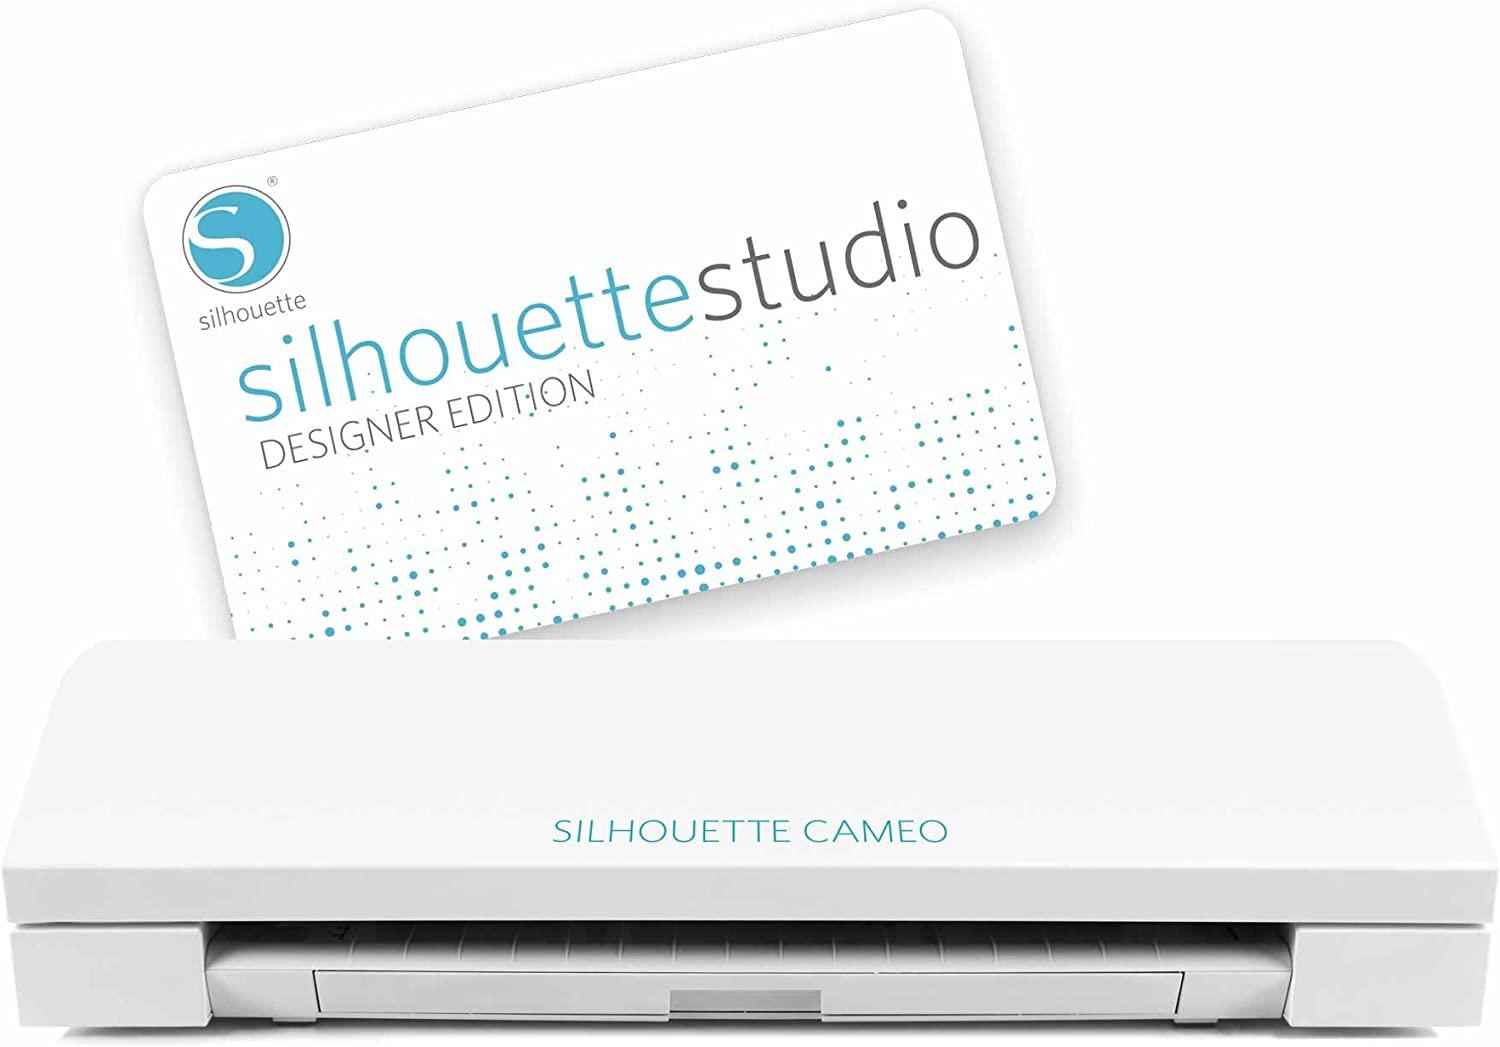 Silhouette Cameo 3 + Designer Edition Software: Amazon.es: Informática